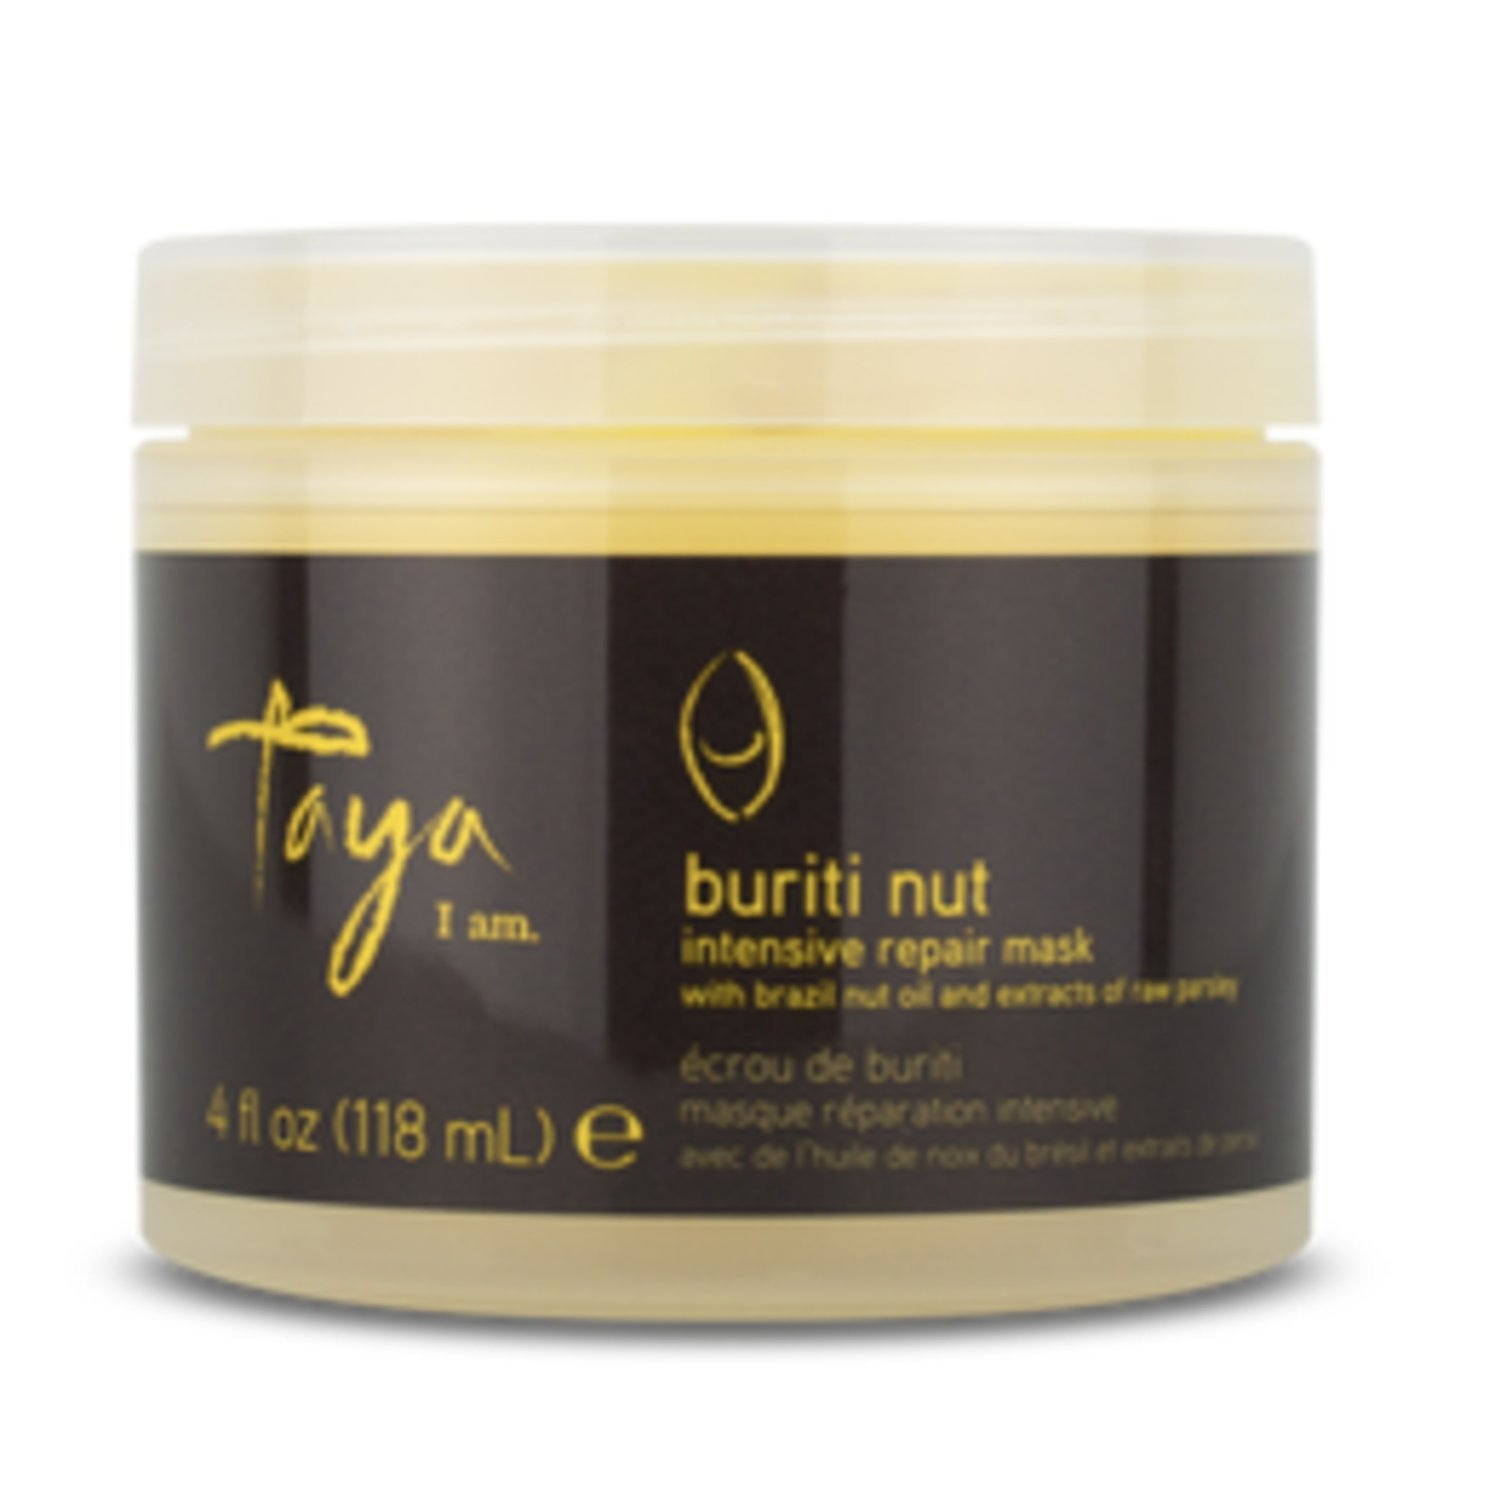 Buriti Nut Intensive Repair Mask for sale